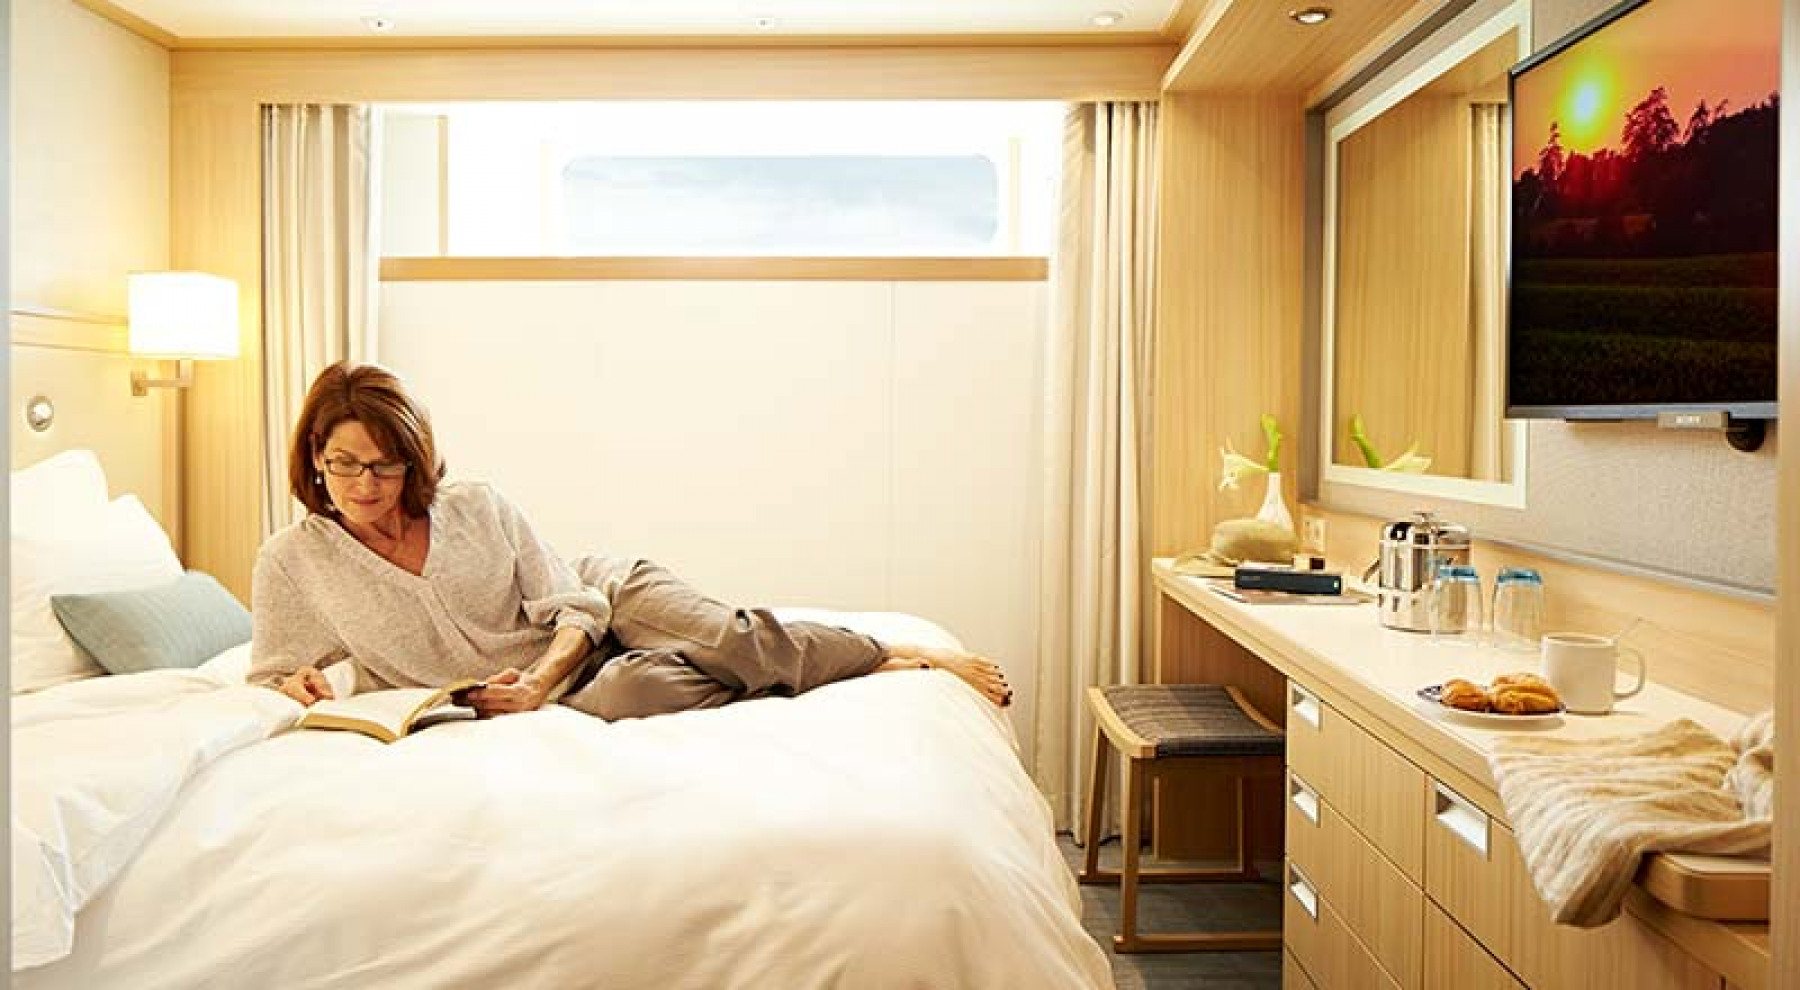 Viking River Cruises - Freya - Accommodation - Standard - Photo 1.jpg